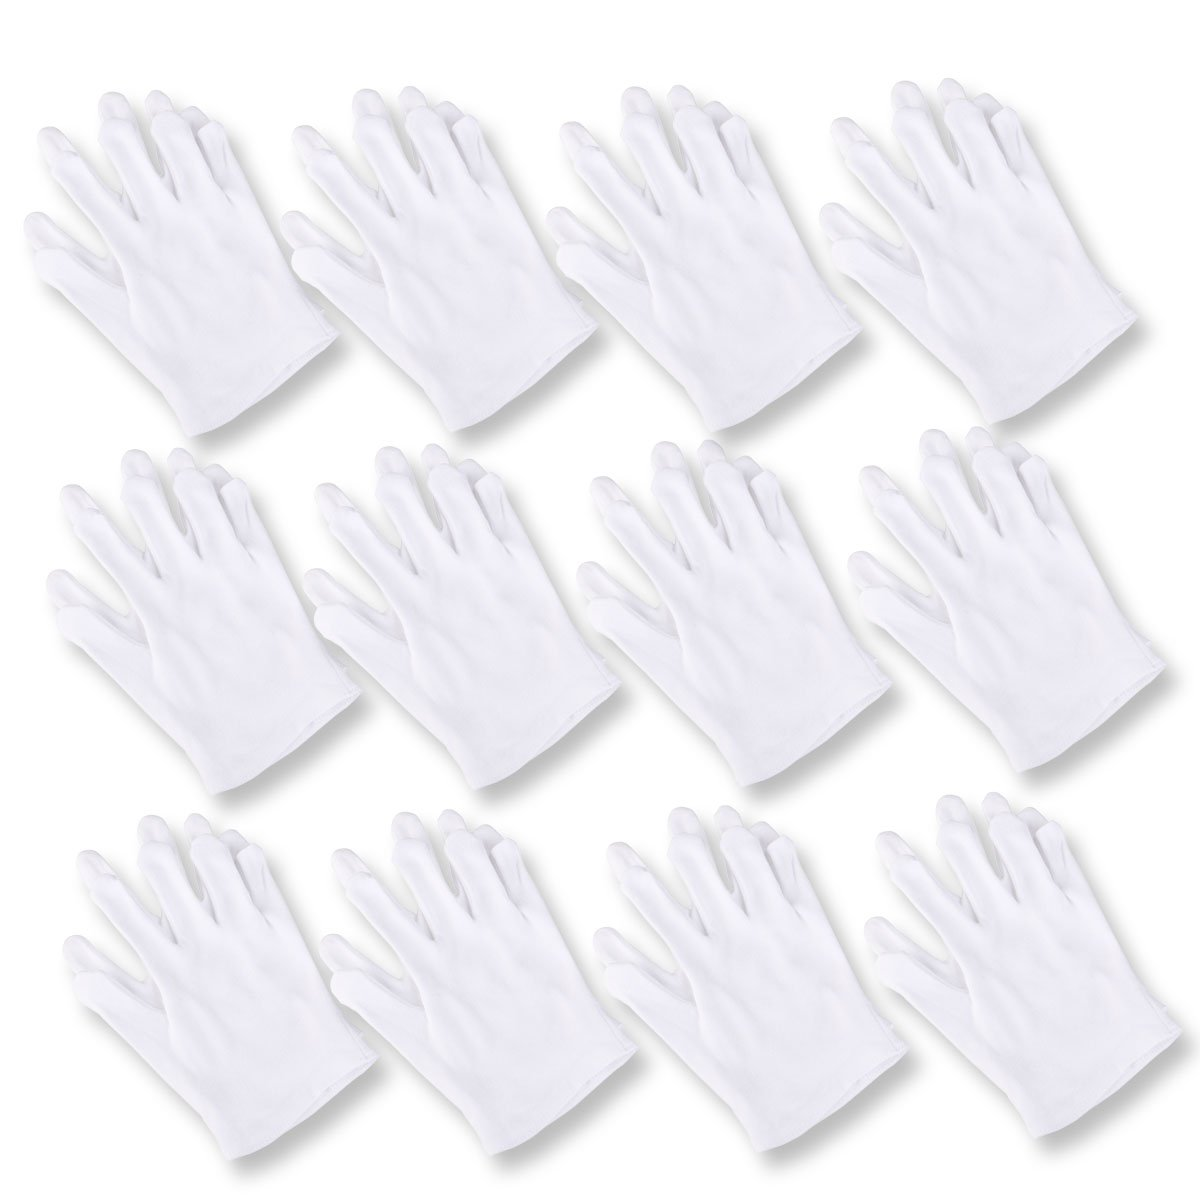 ROSENICE 12 Pairs White Cotton Gloves for Cosmetic Moisturizing and Coin Inspection Beauty Work Glove Liners Unisex